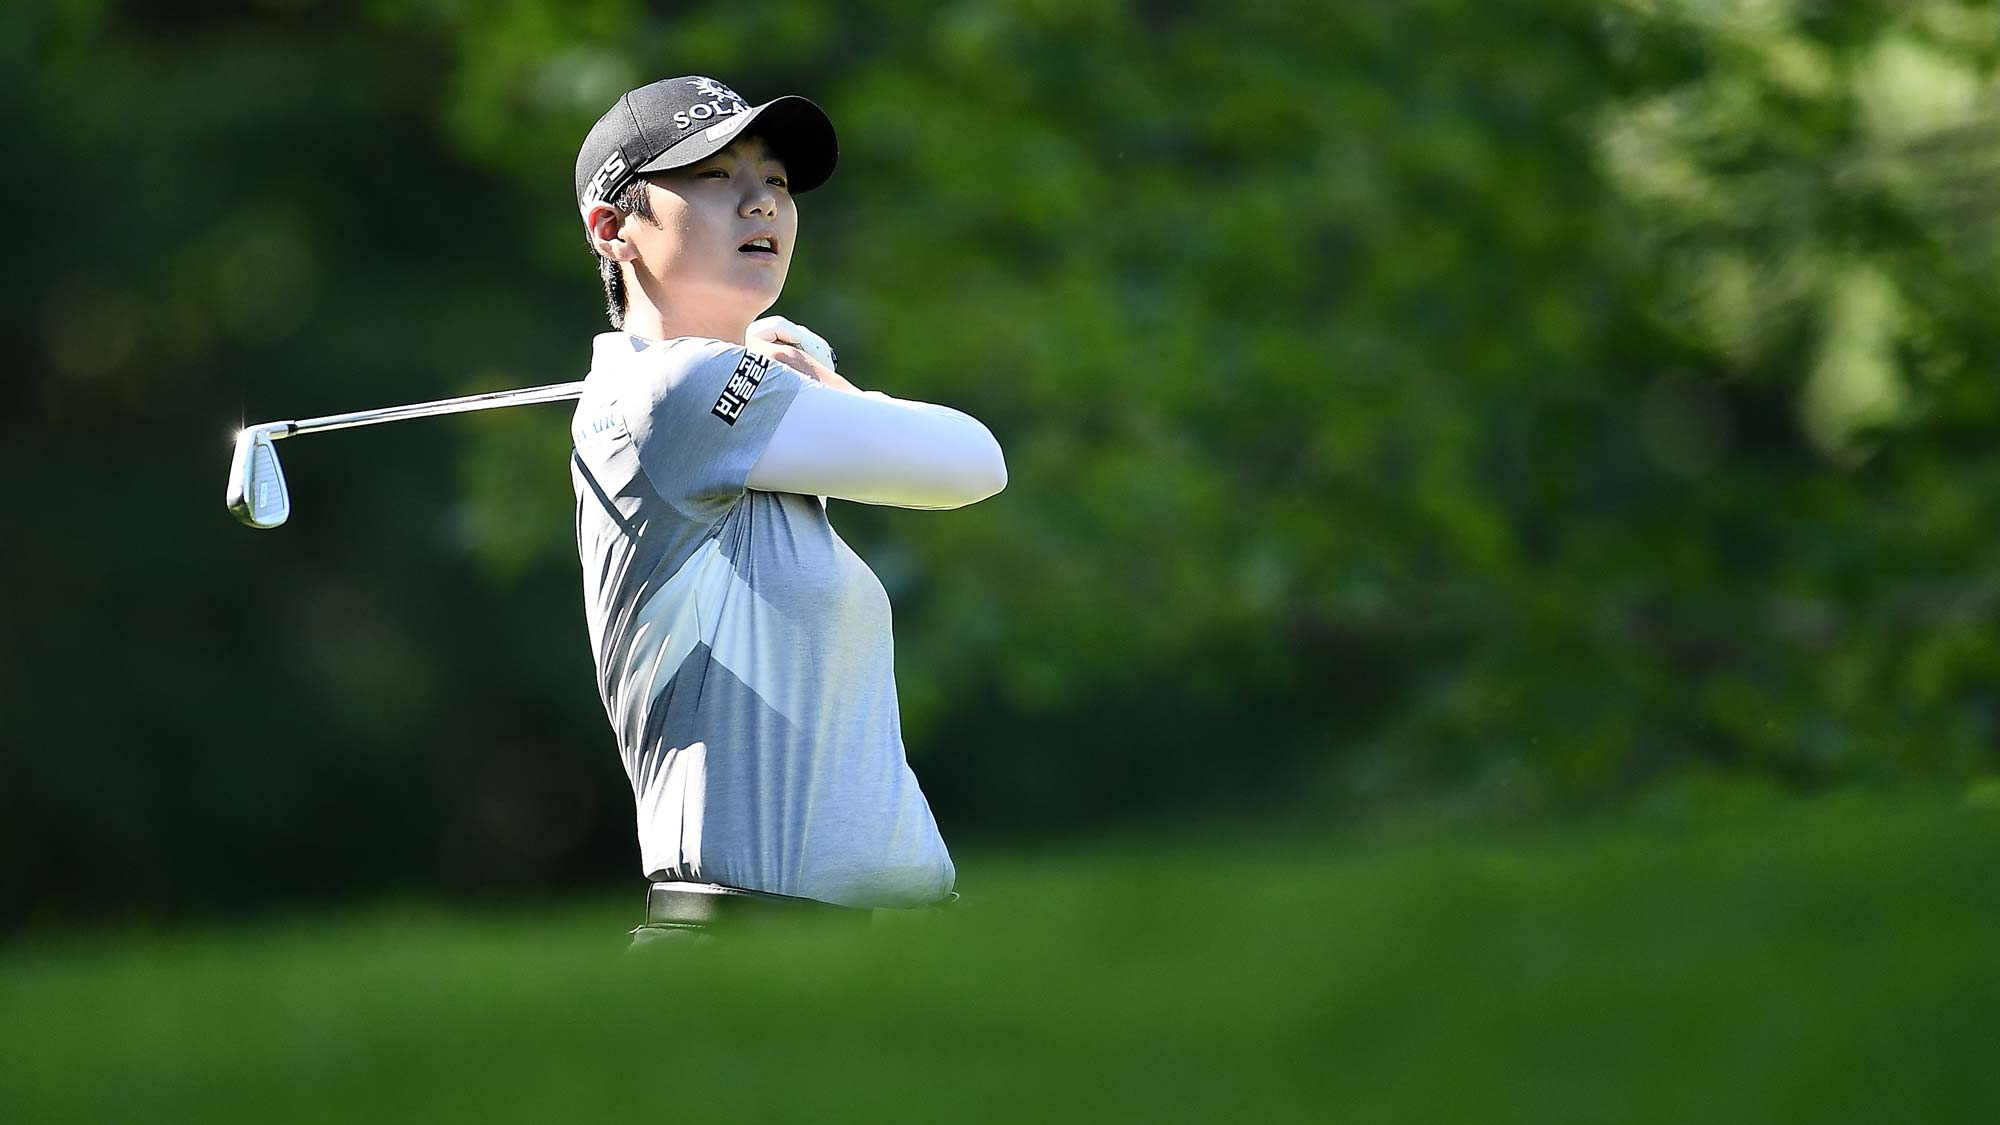 Sung Hyun Park of the Republic of Korea hits her tee shot on the second hole during the second round of the Thornberry Creek LPGA Classic